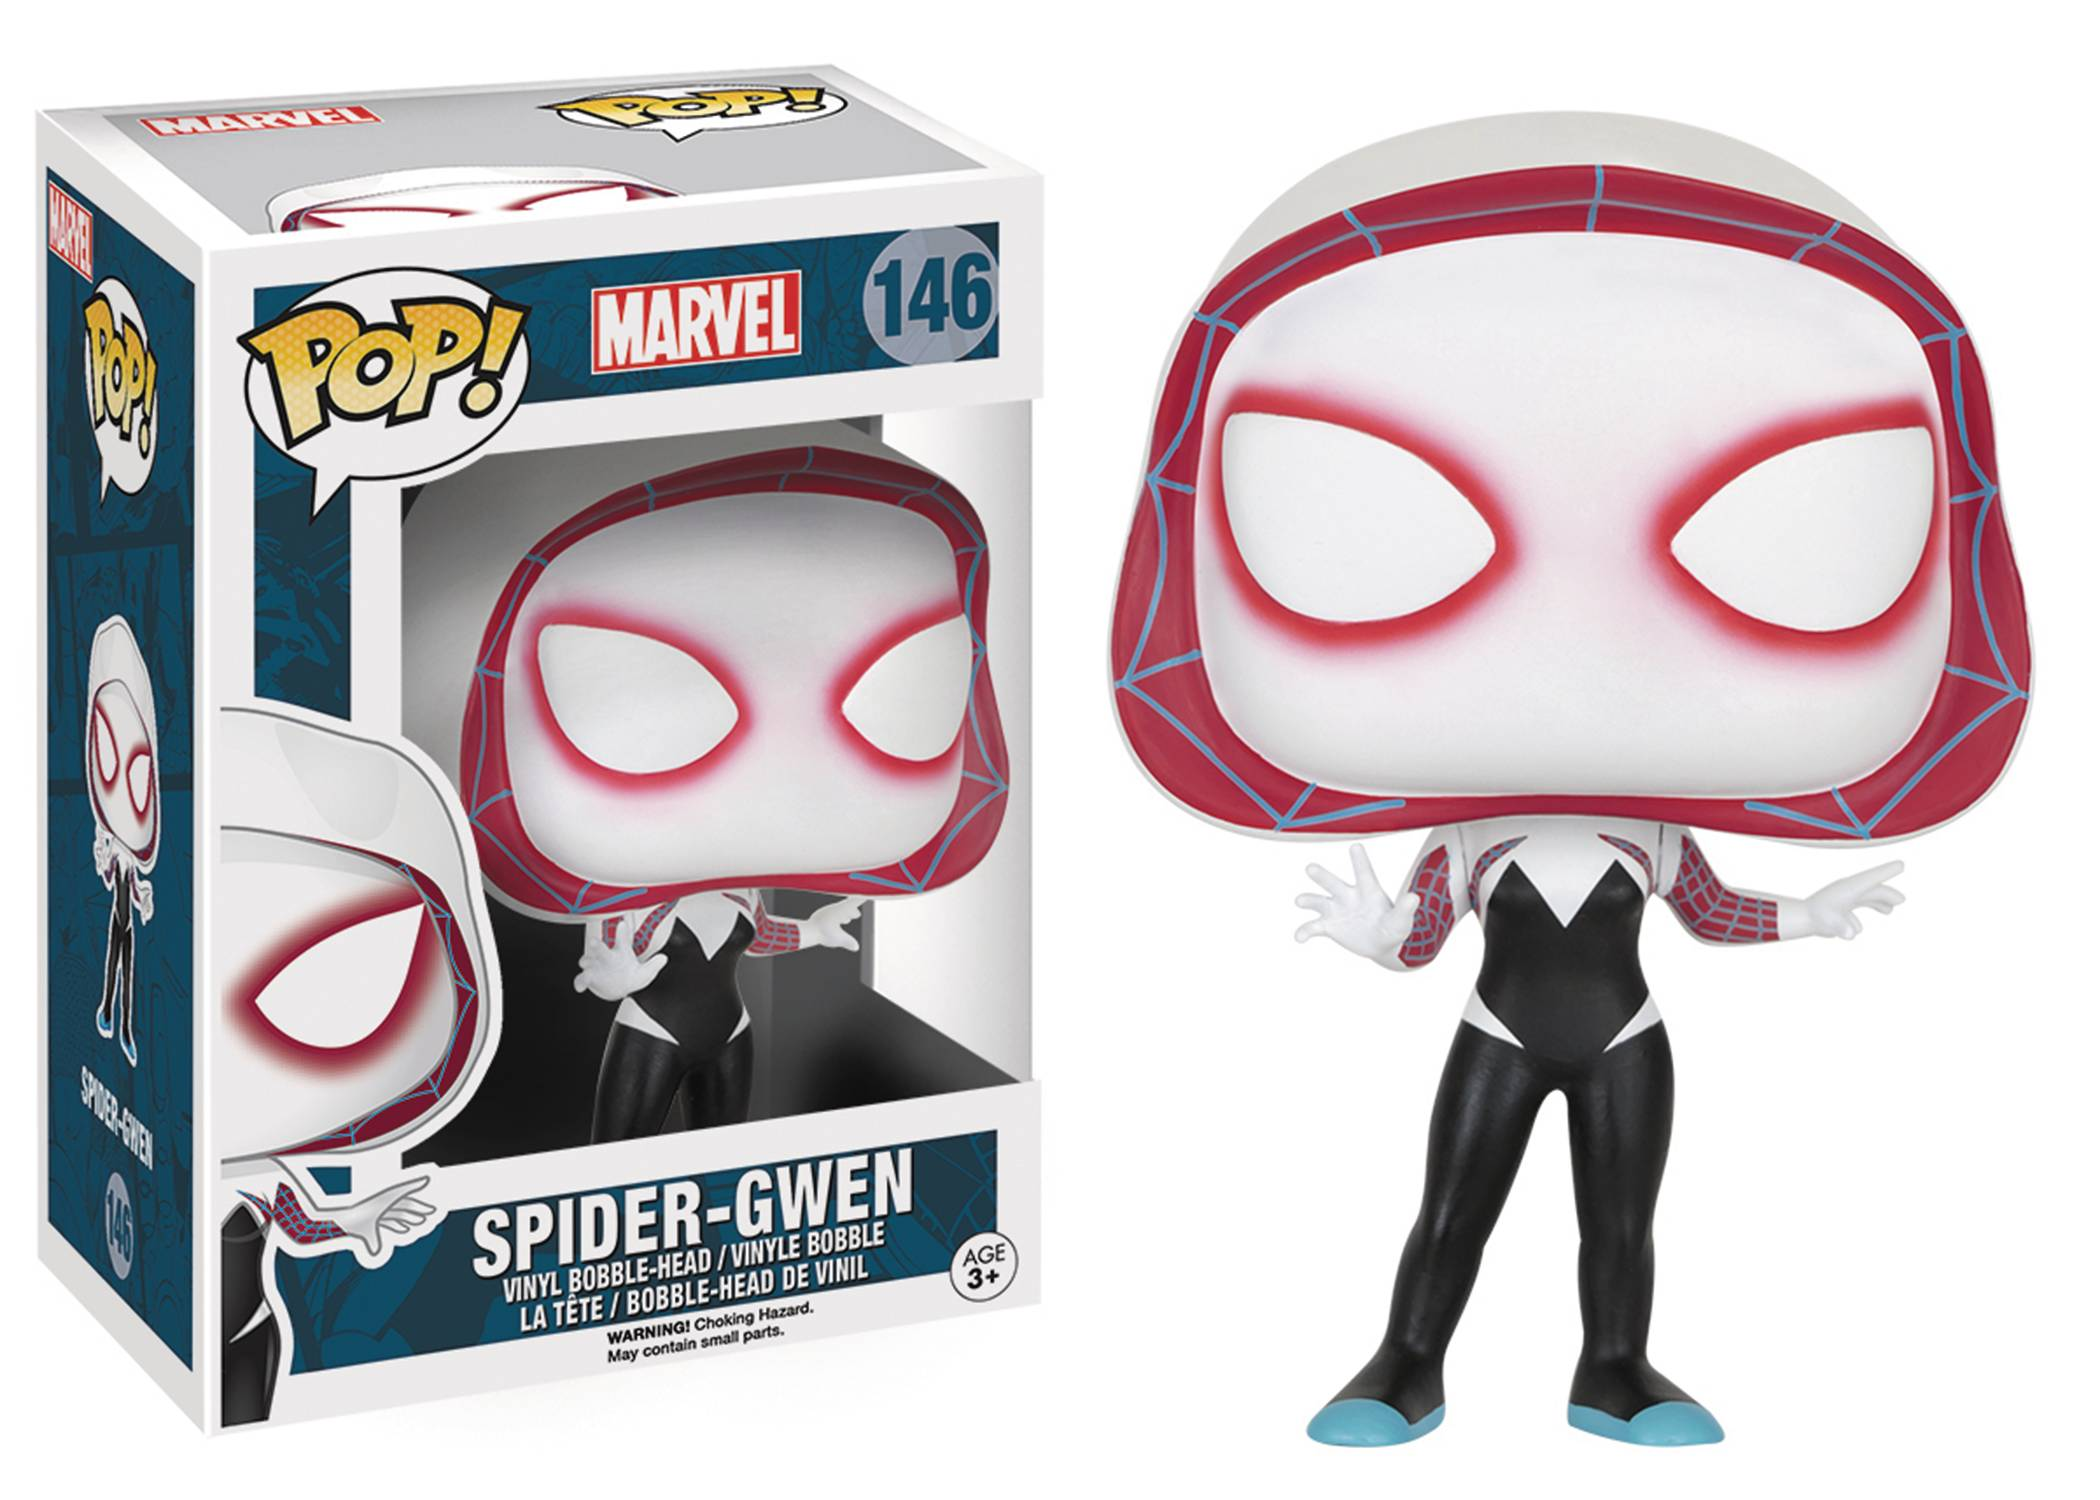 POP MARVEL SPIDER-GWEN VINYL FIG